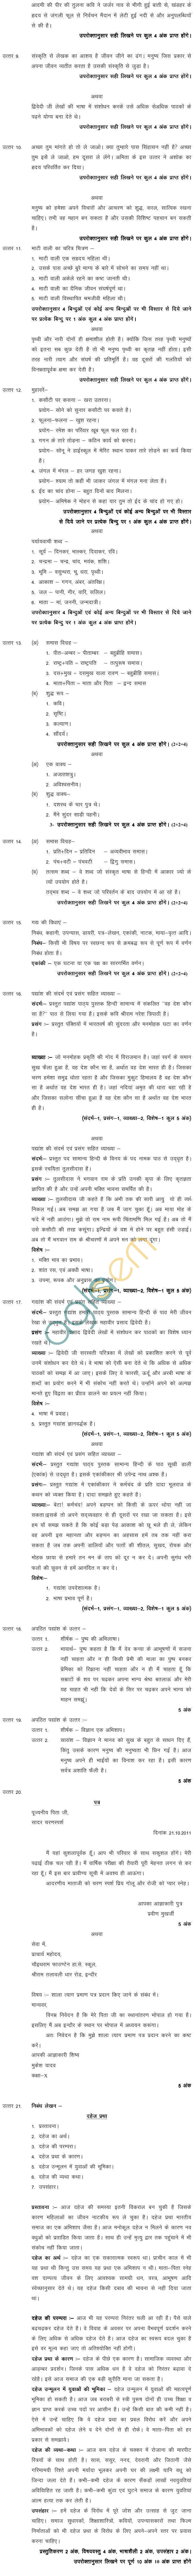 MP Board Class X Hindi General Model Questions & Answers - Set 1